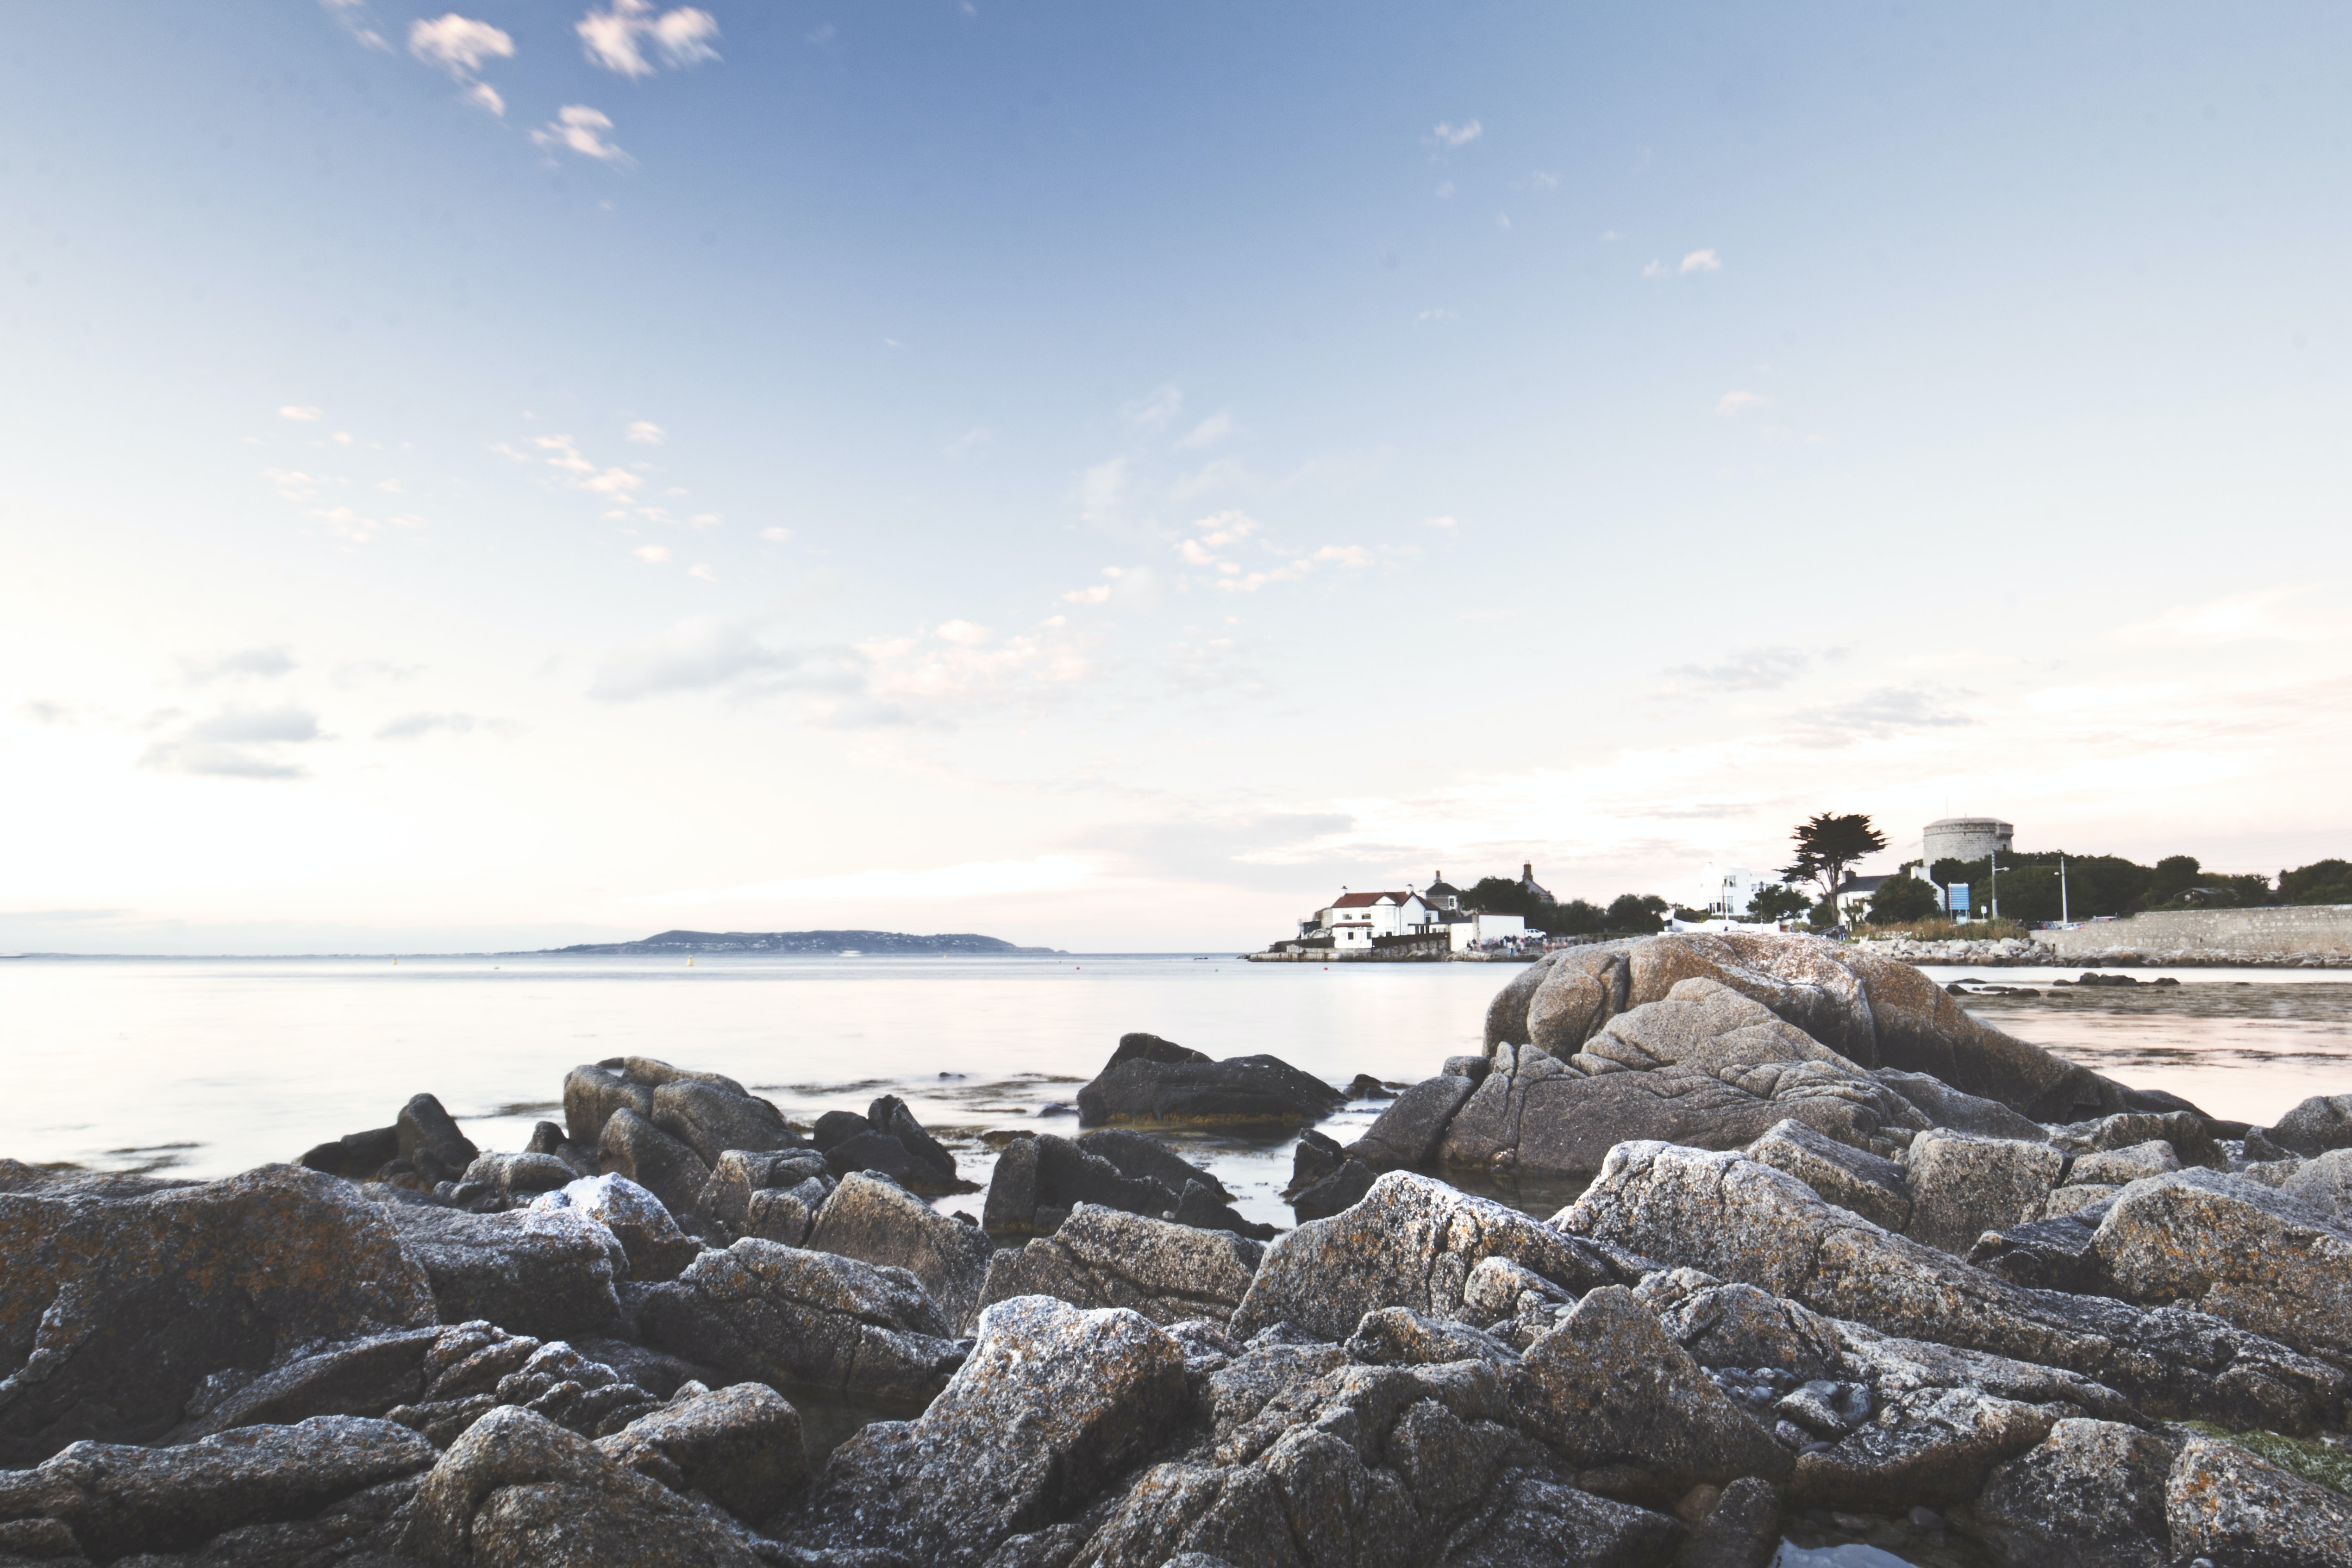 Coastal houses viewed from a rocky shore at Dún Laoghaire